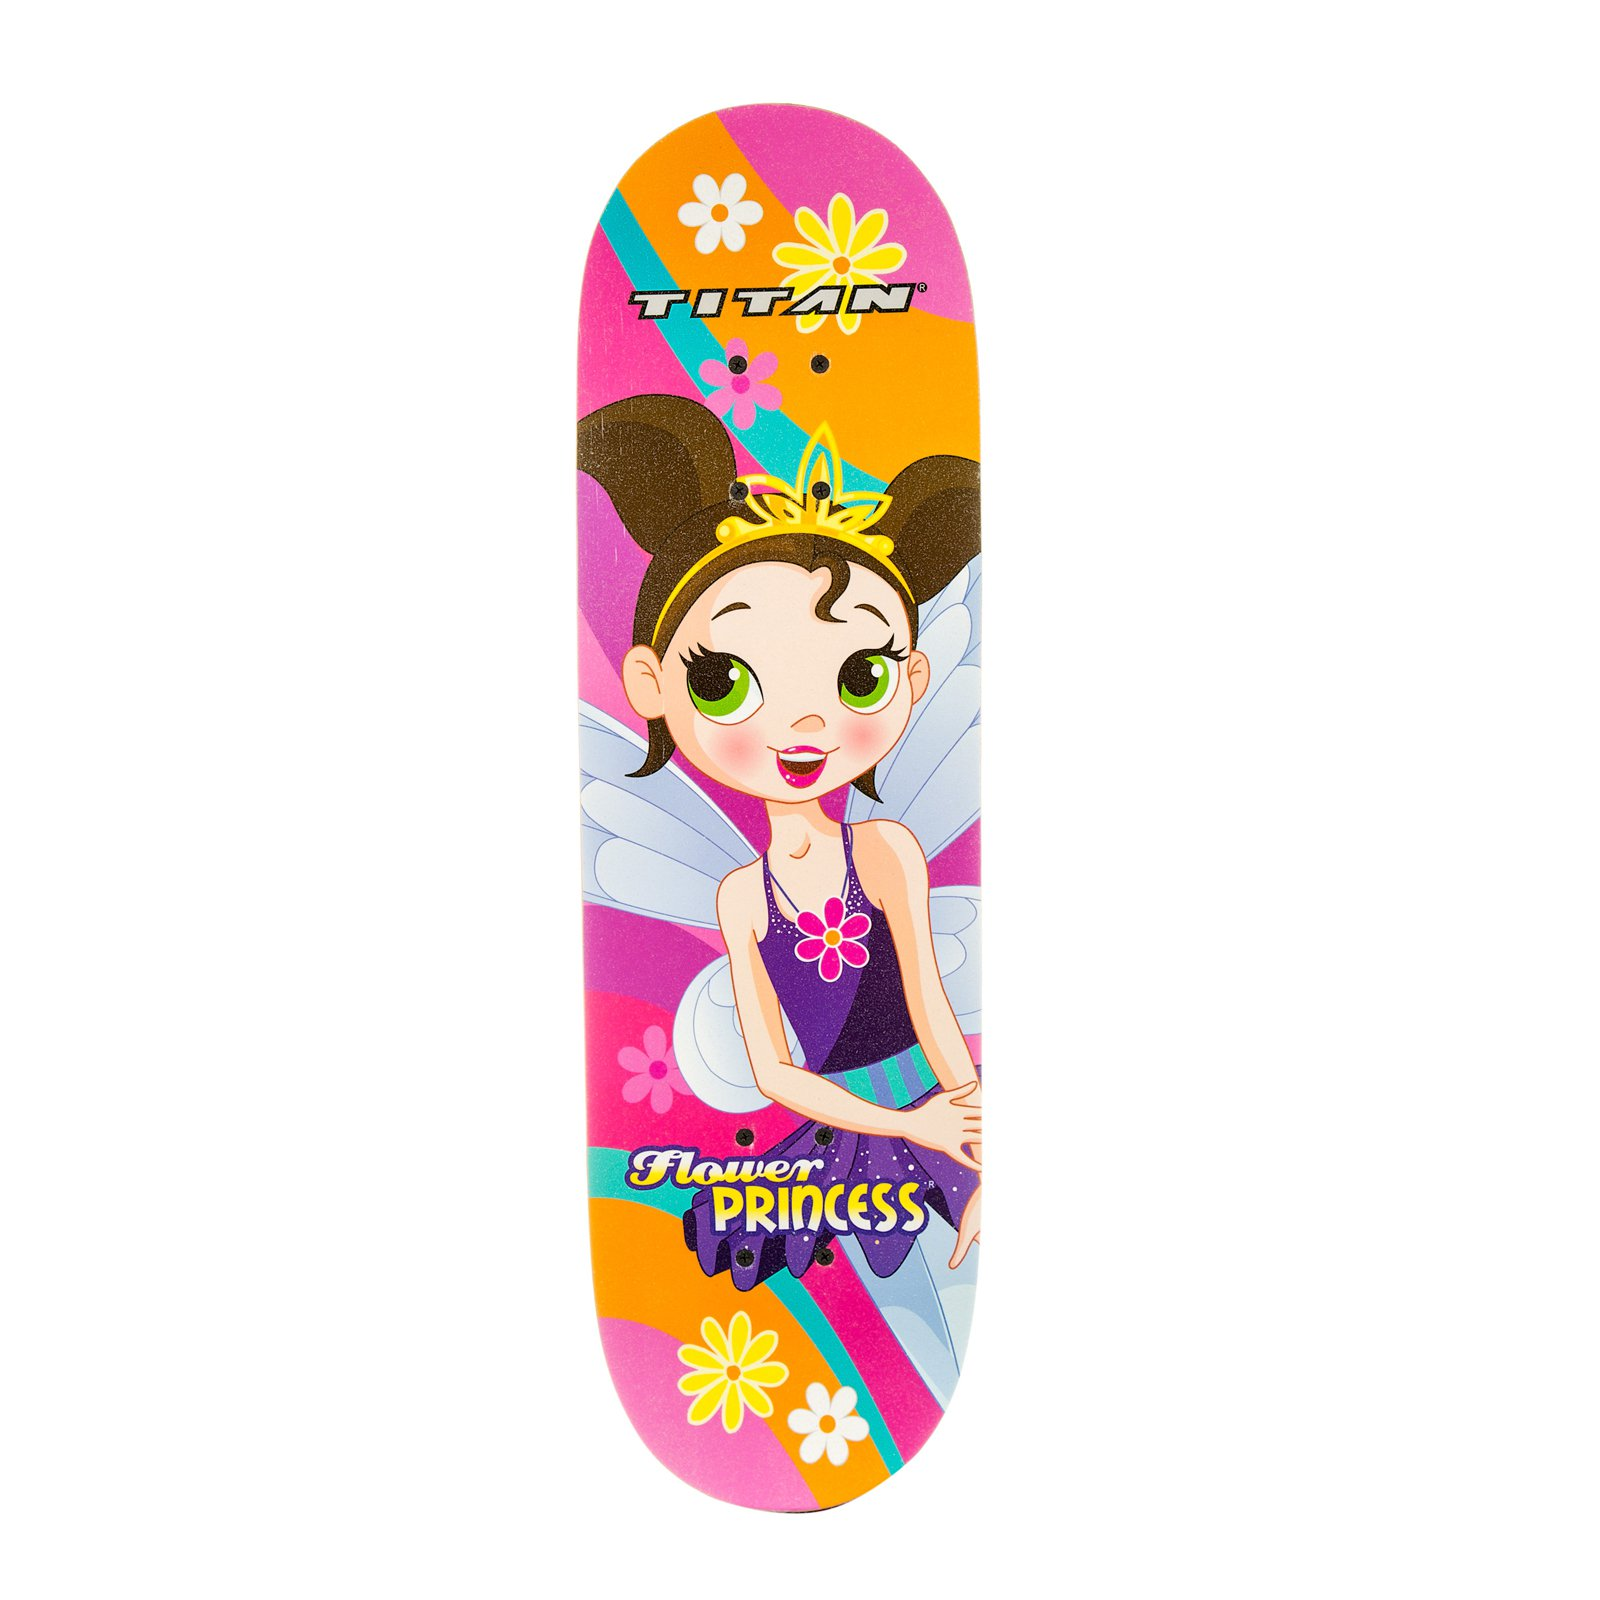 Titan Flower Princess Pink Complete Skateboard by Overstock